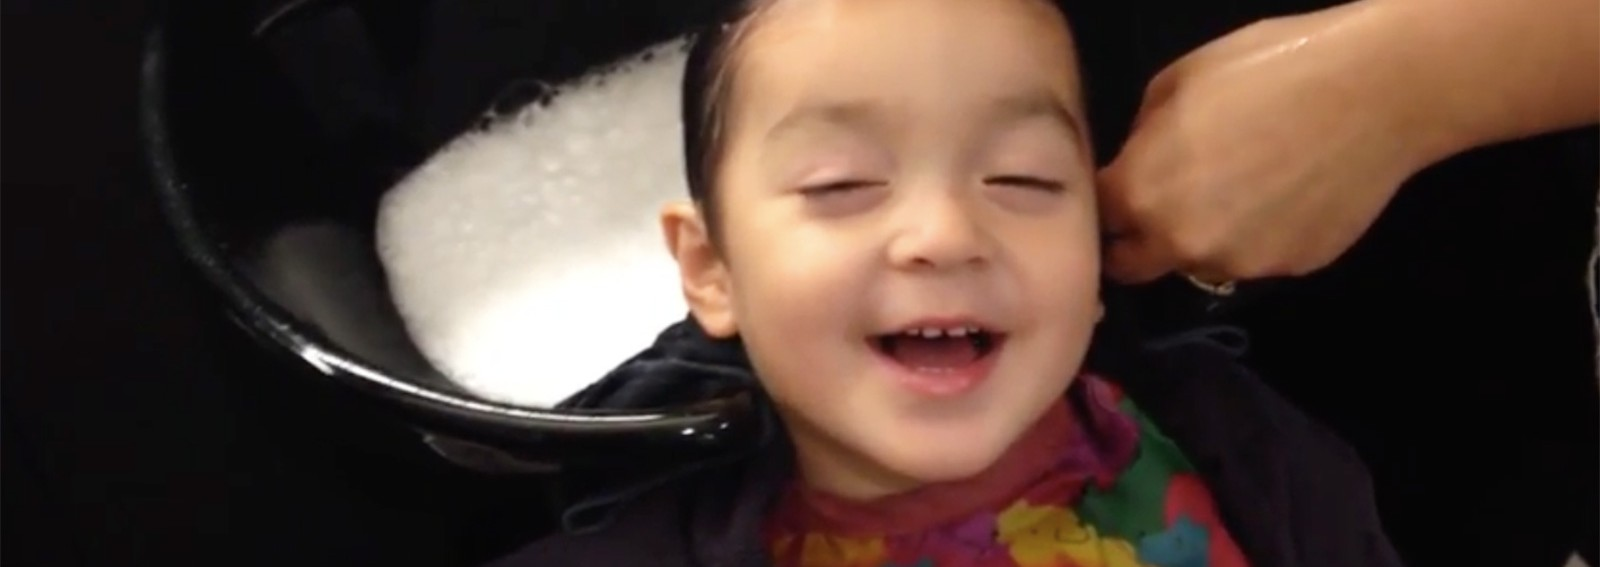 Adorable kid has the best reaction to salon hair wash